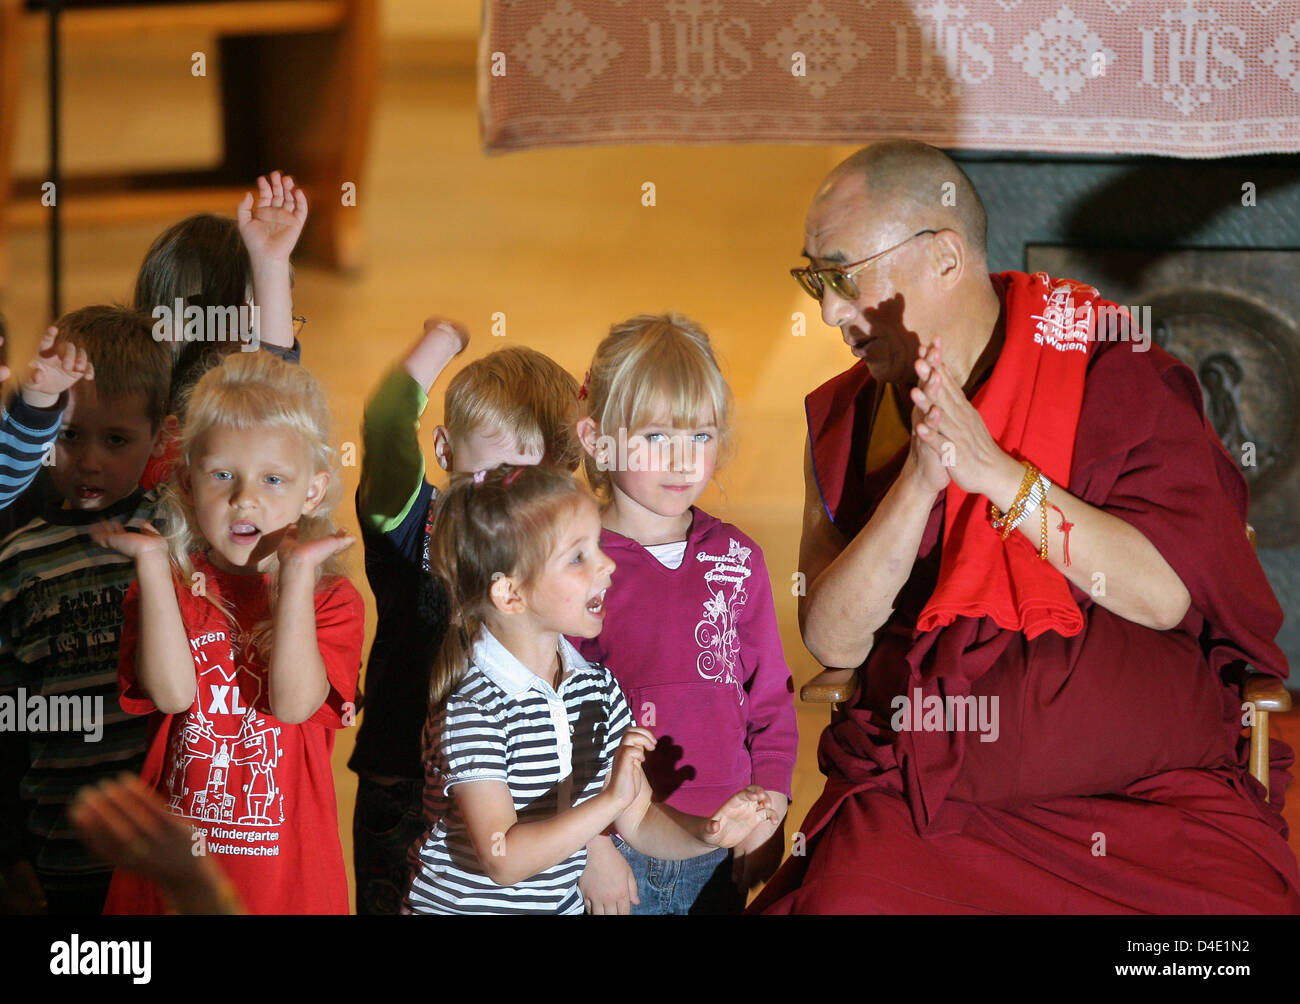 The Dalai Lama embraces children after a questions and answers Stock     The Dalai Lama embraces children after a questions and answers session with  kids at St  Nikolaus church in Bochum  Germany  16 May 2008